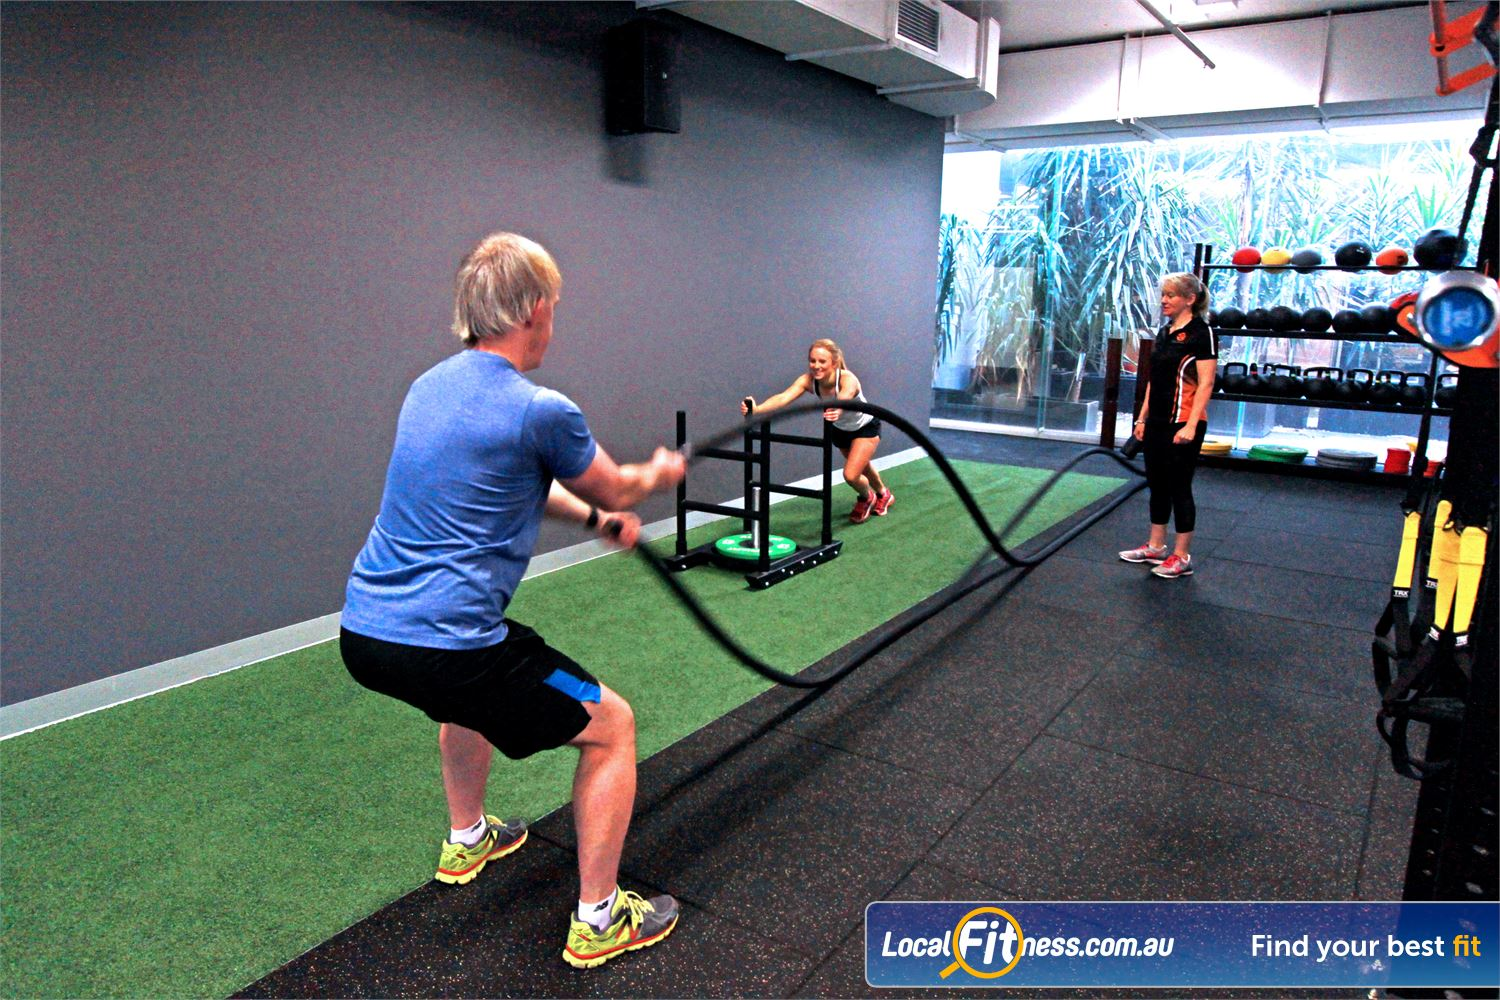 South Pacific Health Clubs Near Parkdale Our Mentone HIIT gym area includes a indoor sled track.